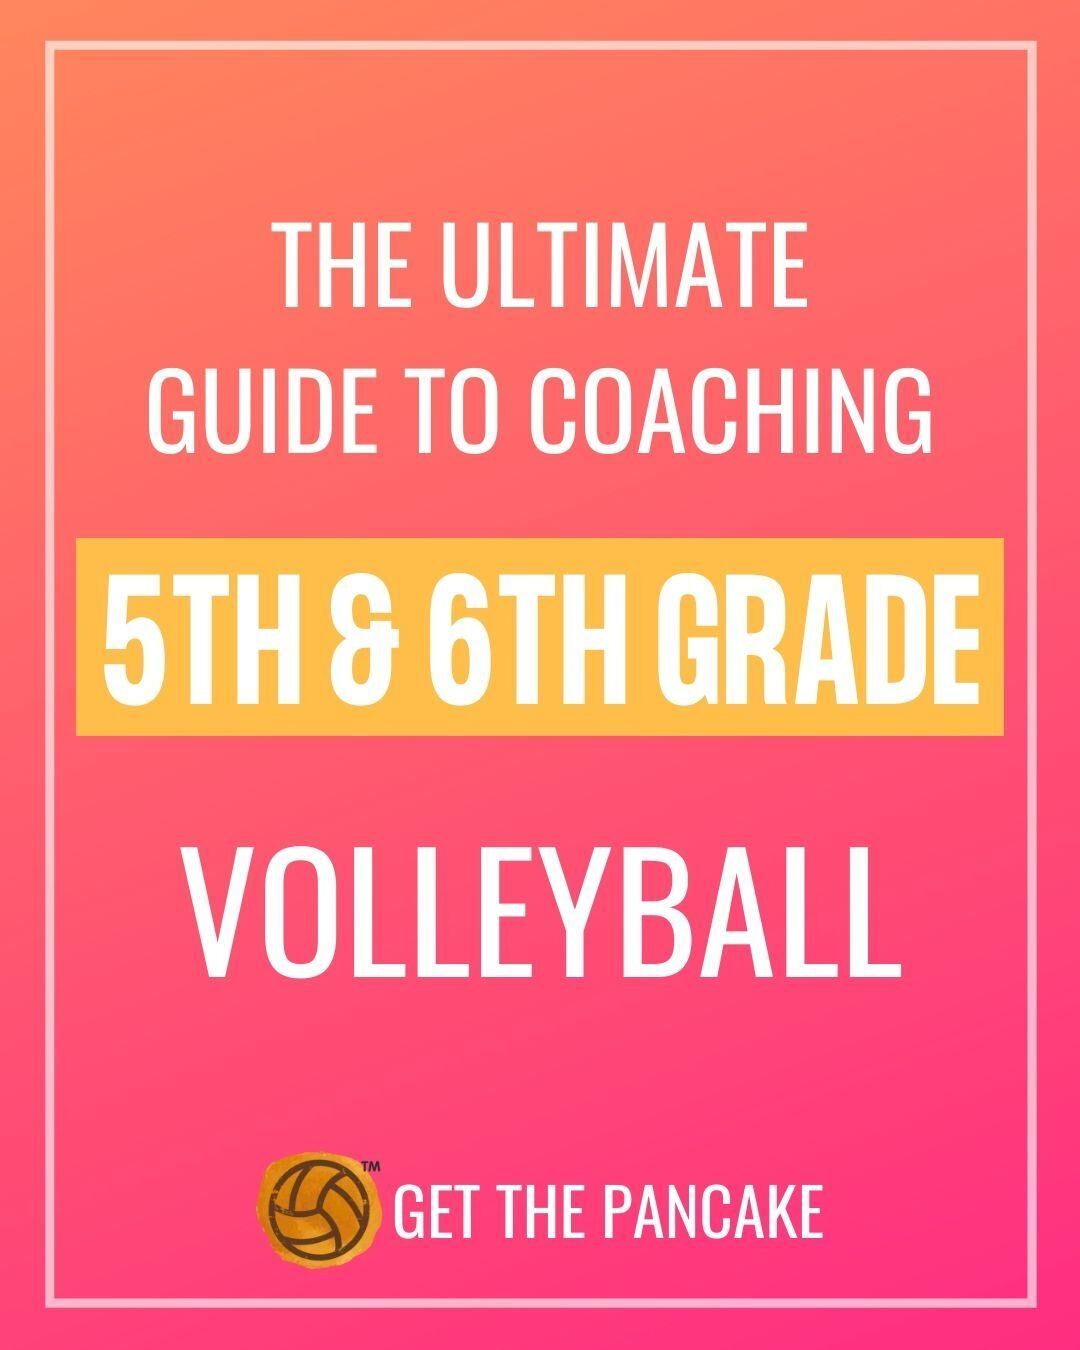 The Ultimate Guide To Coaching 5th And 6th Grade Volleyball Rules Skills Drills And More In 2020 With Images Volleyball Drills For Beginners Coaching Volleyball Volleyball Training